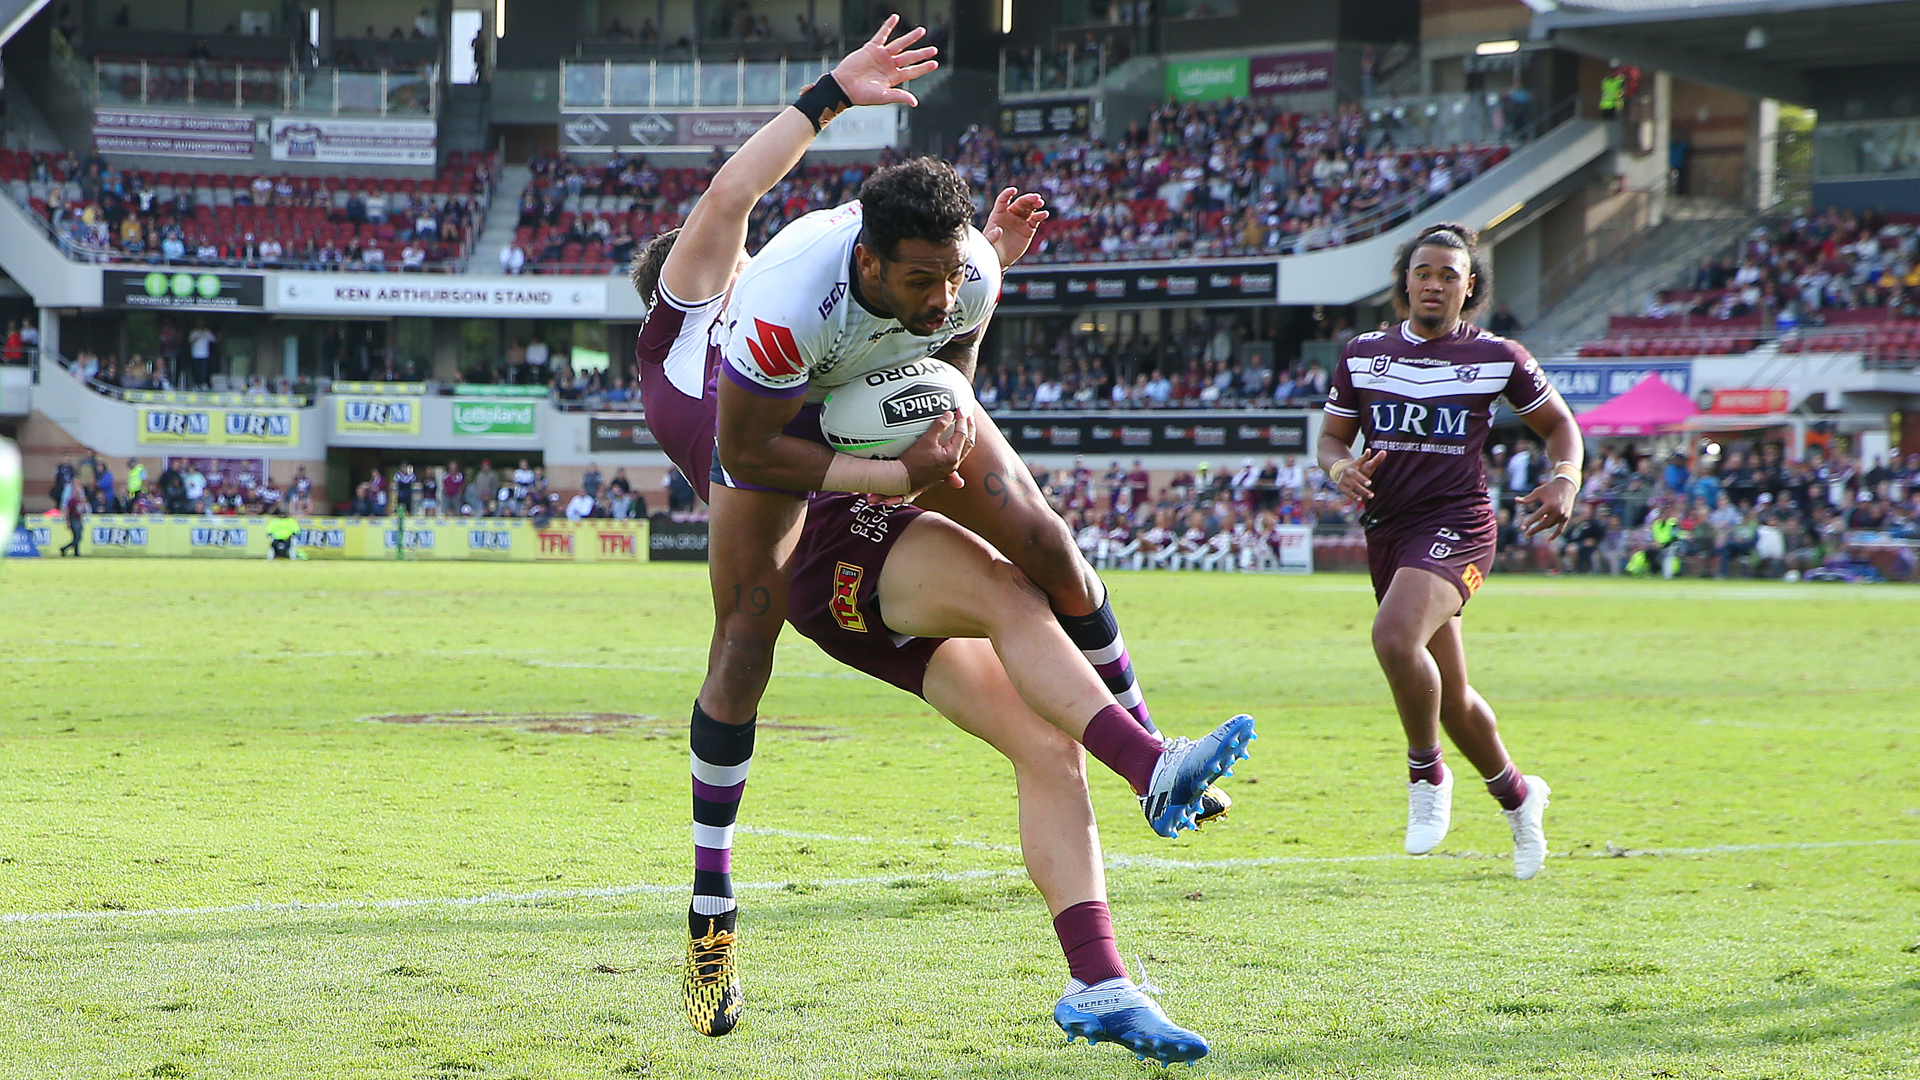 Addo-Carr to join Bulldogs on four-year deal from 2022